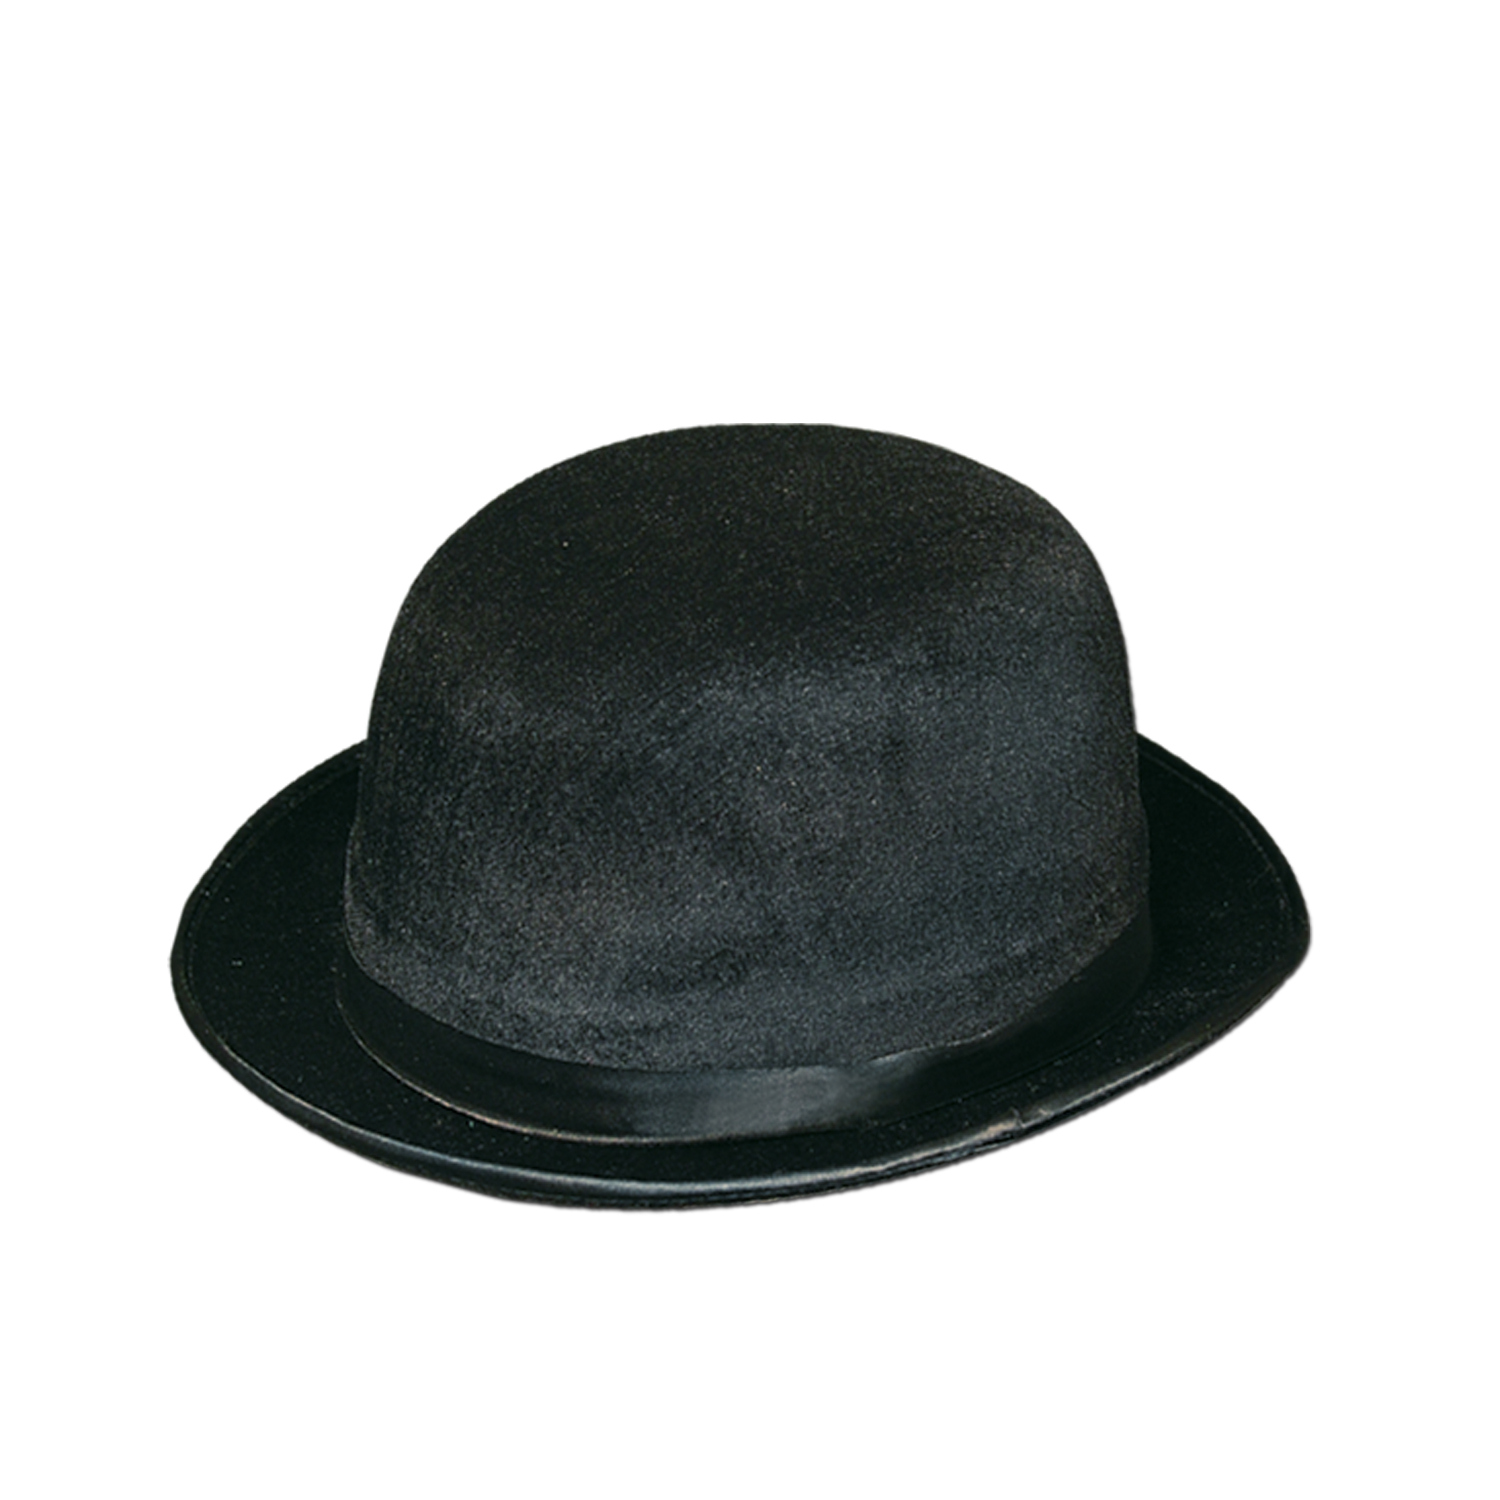 Plastic molded derby hat with velour coating and a silk like band.